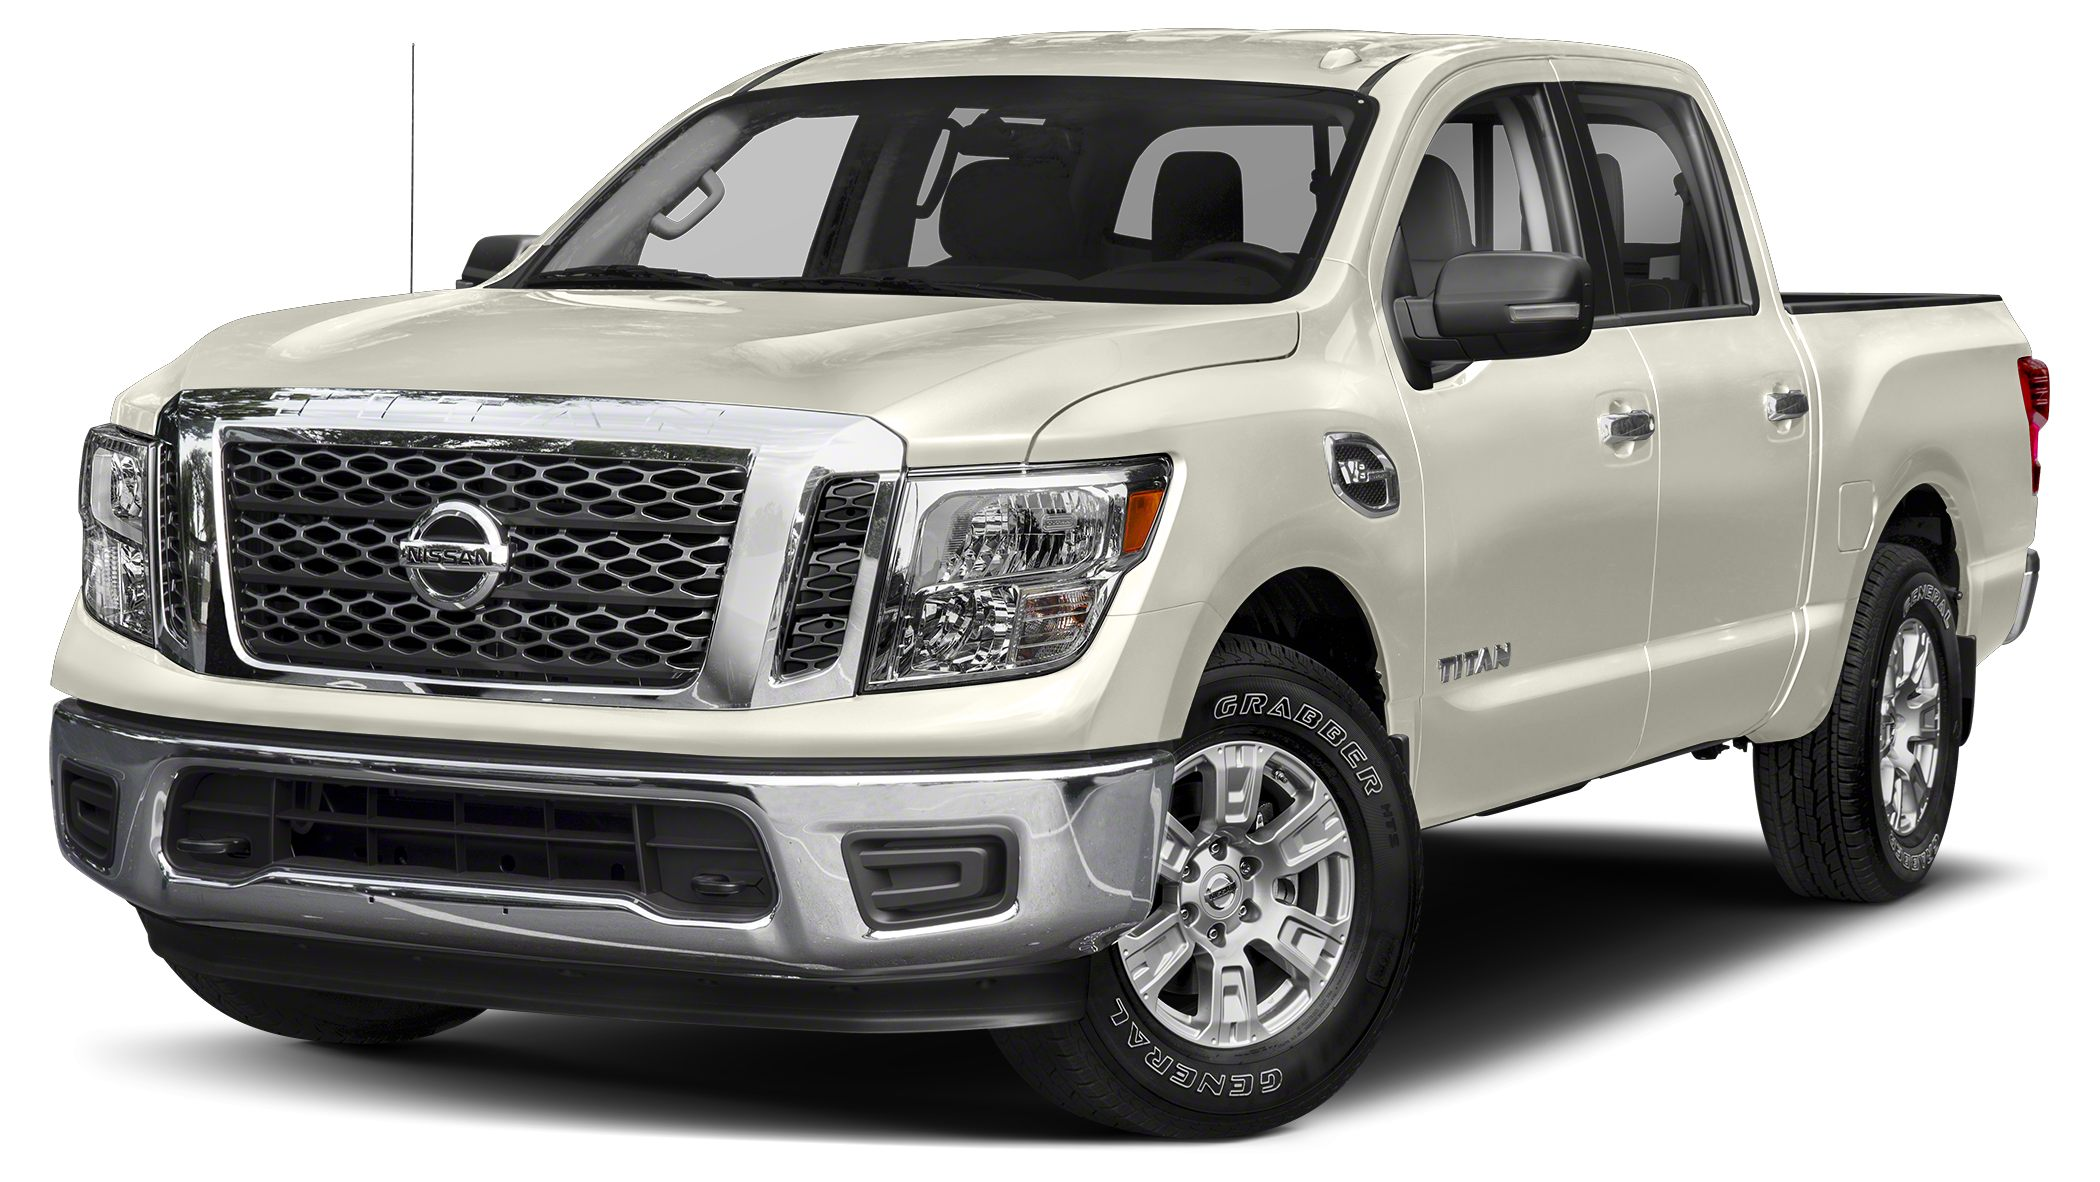 2017 Nissan Titan SV Bluetooth This 2017 Nissan Titan SV is Brilliant Silver This Nissan Titan